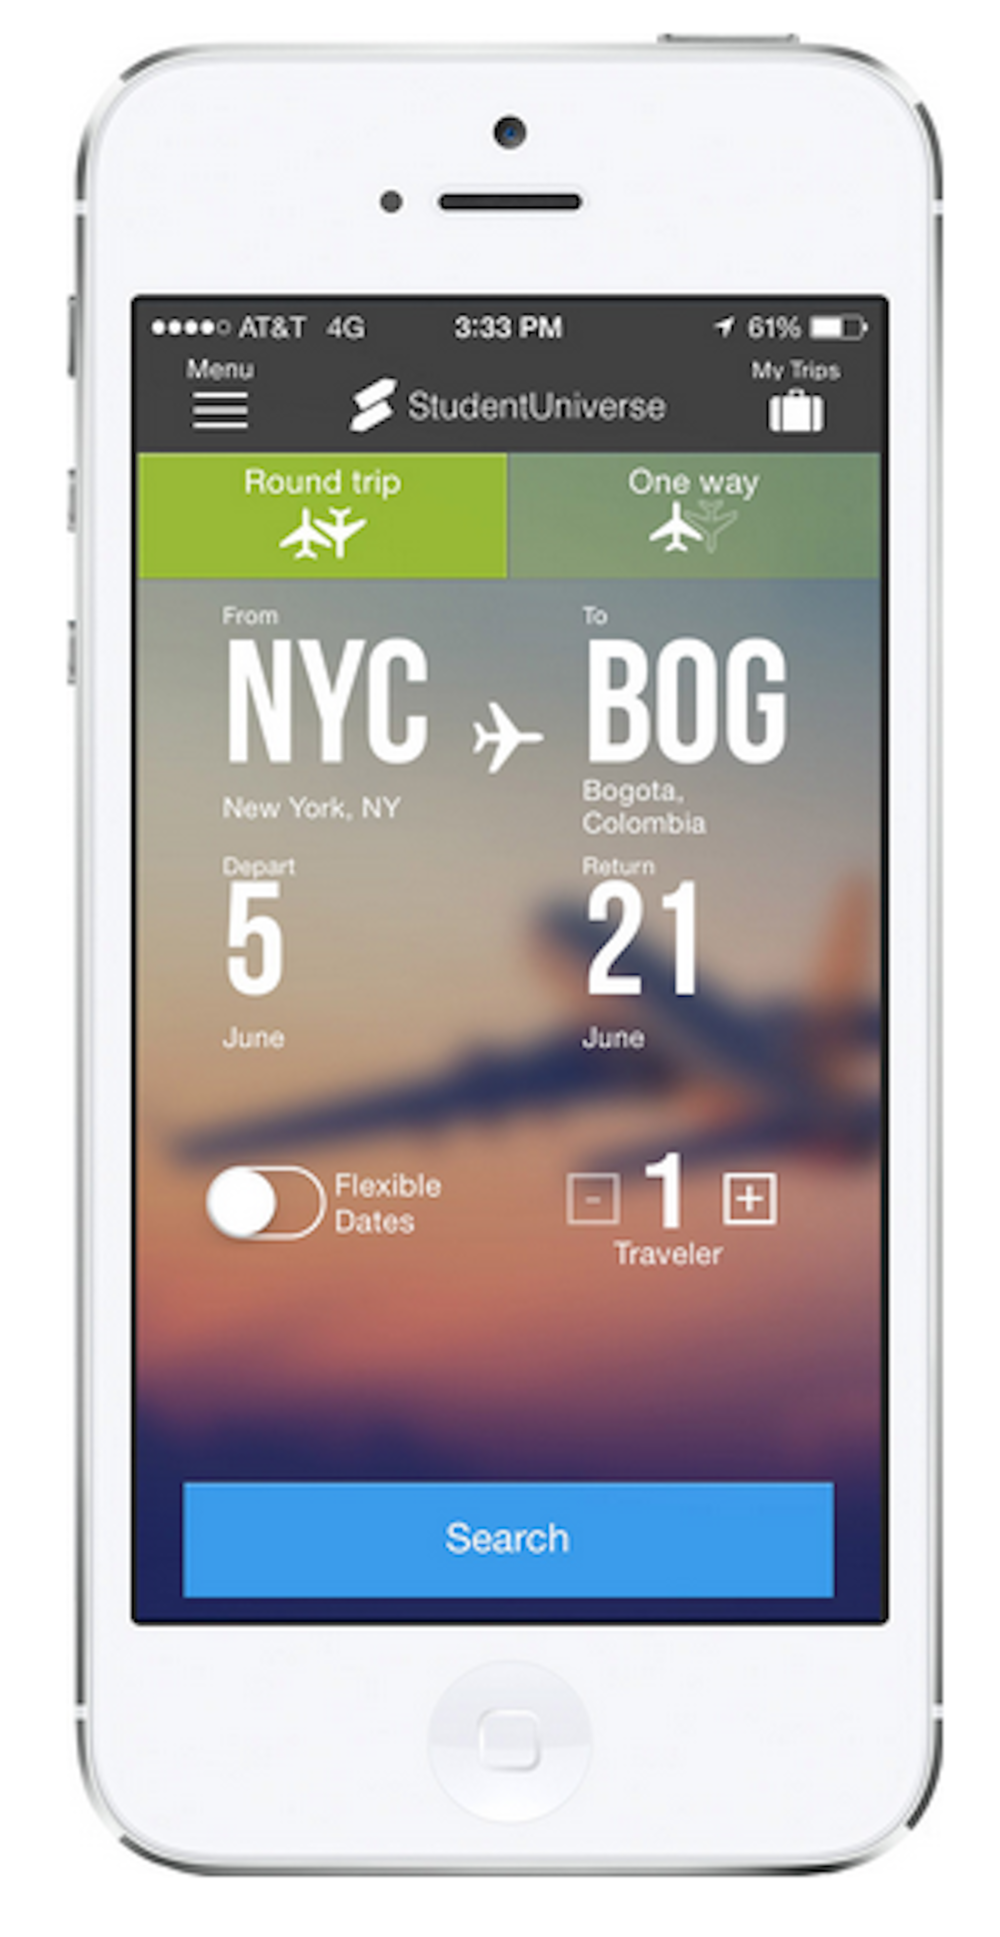 The StudentUniverse app provides the best airline ticket deals for students planning trips on a budget. (Screenshot/StudentUniverse)